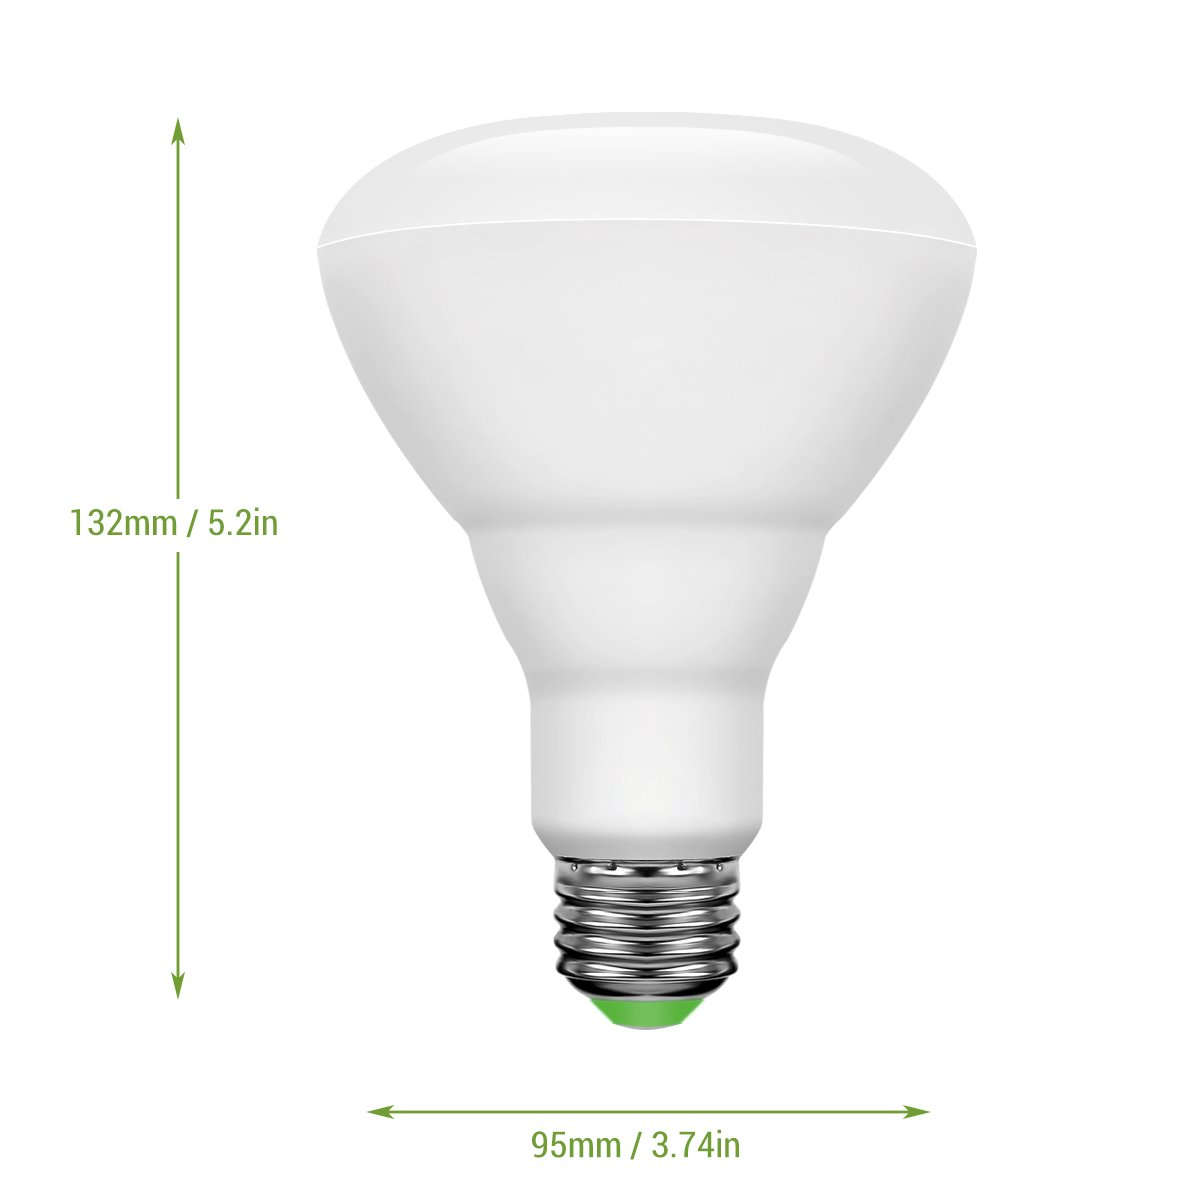 LE Smart Bluetooth LED BR30 Light Bulb, 10W Dimmable, Multi-Color Changing Lights, Smartphone Controlled RGBW Bulb, E26 Warm White, Compatible with iPhone, and Android